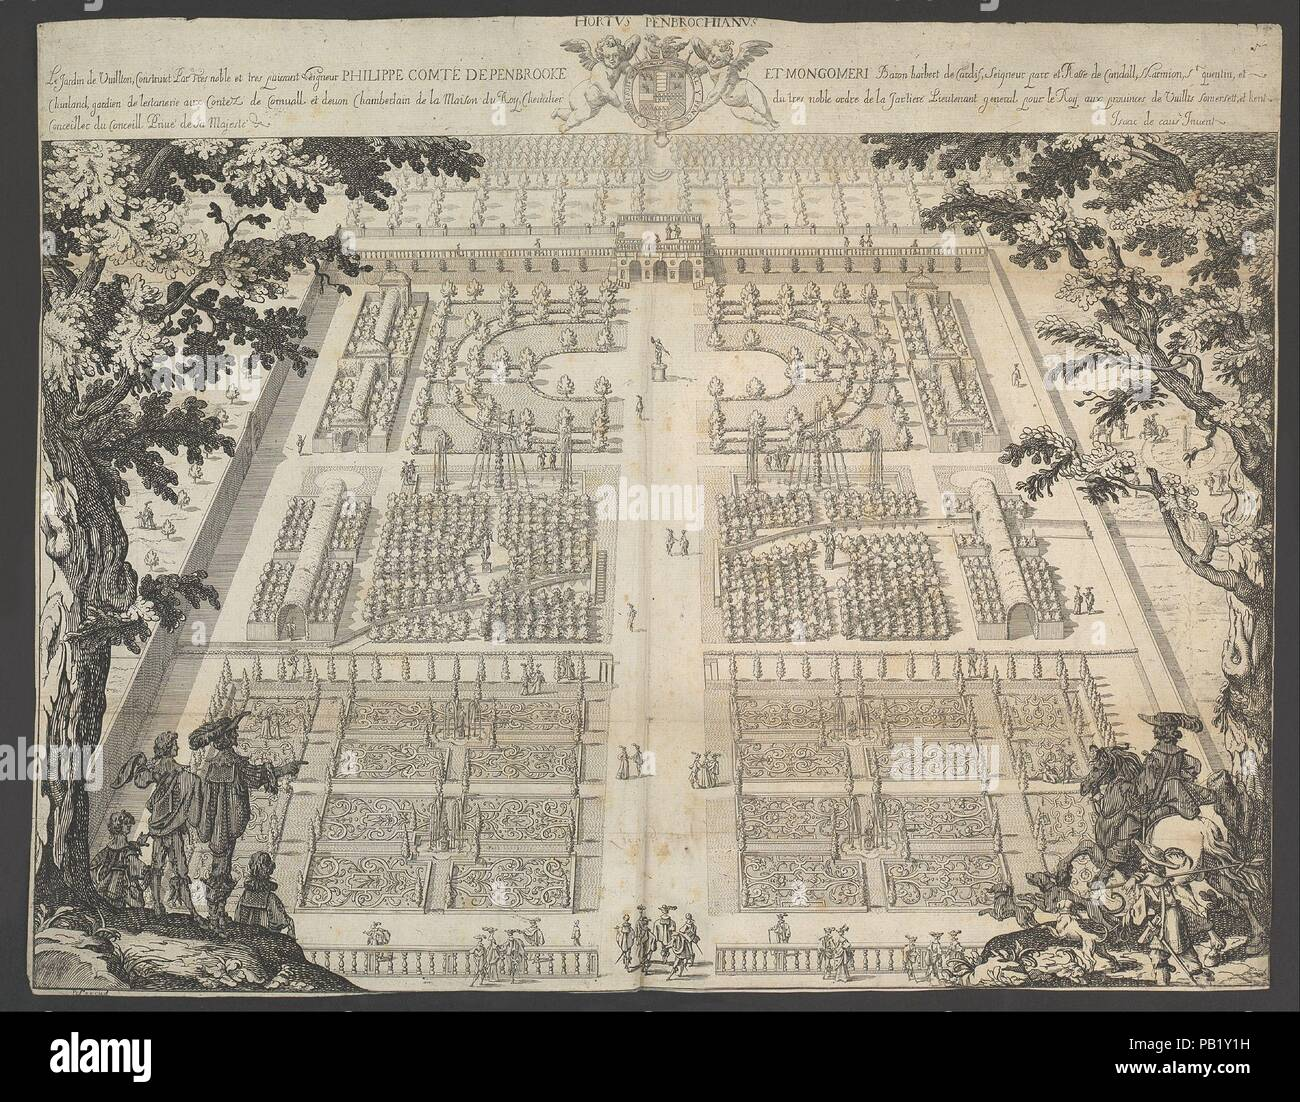 Wilton Garden, plate 1. Designer: Isaac de Caus (British (born France), Dieppe 1590-after 1655). Dimensions: Sheet (unfolded): 16 1/8 × 20 9/16 in. (41 × 52.3 cm). Etcher: Peter Stent (British, active ca. 1615/17-1665). Published in: London. Publisher: Thomas Rowlett (London). Date: ca. 1640.  The garden of Wilton House (Wiltshire), famous today for its eighteenth-century landscape design containing England's first Palladian bridge, was originally laid out in the mid-1630s by the French-born Isaac de Caus (active 1623-55). It was commissioned by Philip Herbert, fourth earl of Pembroke, pivotal - Stock Image